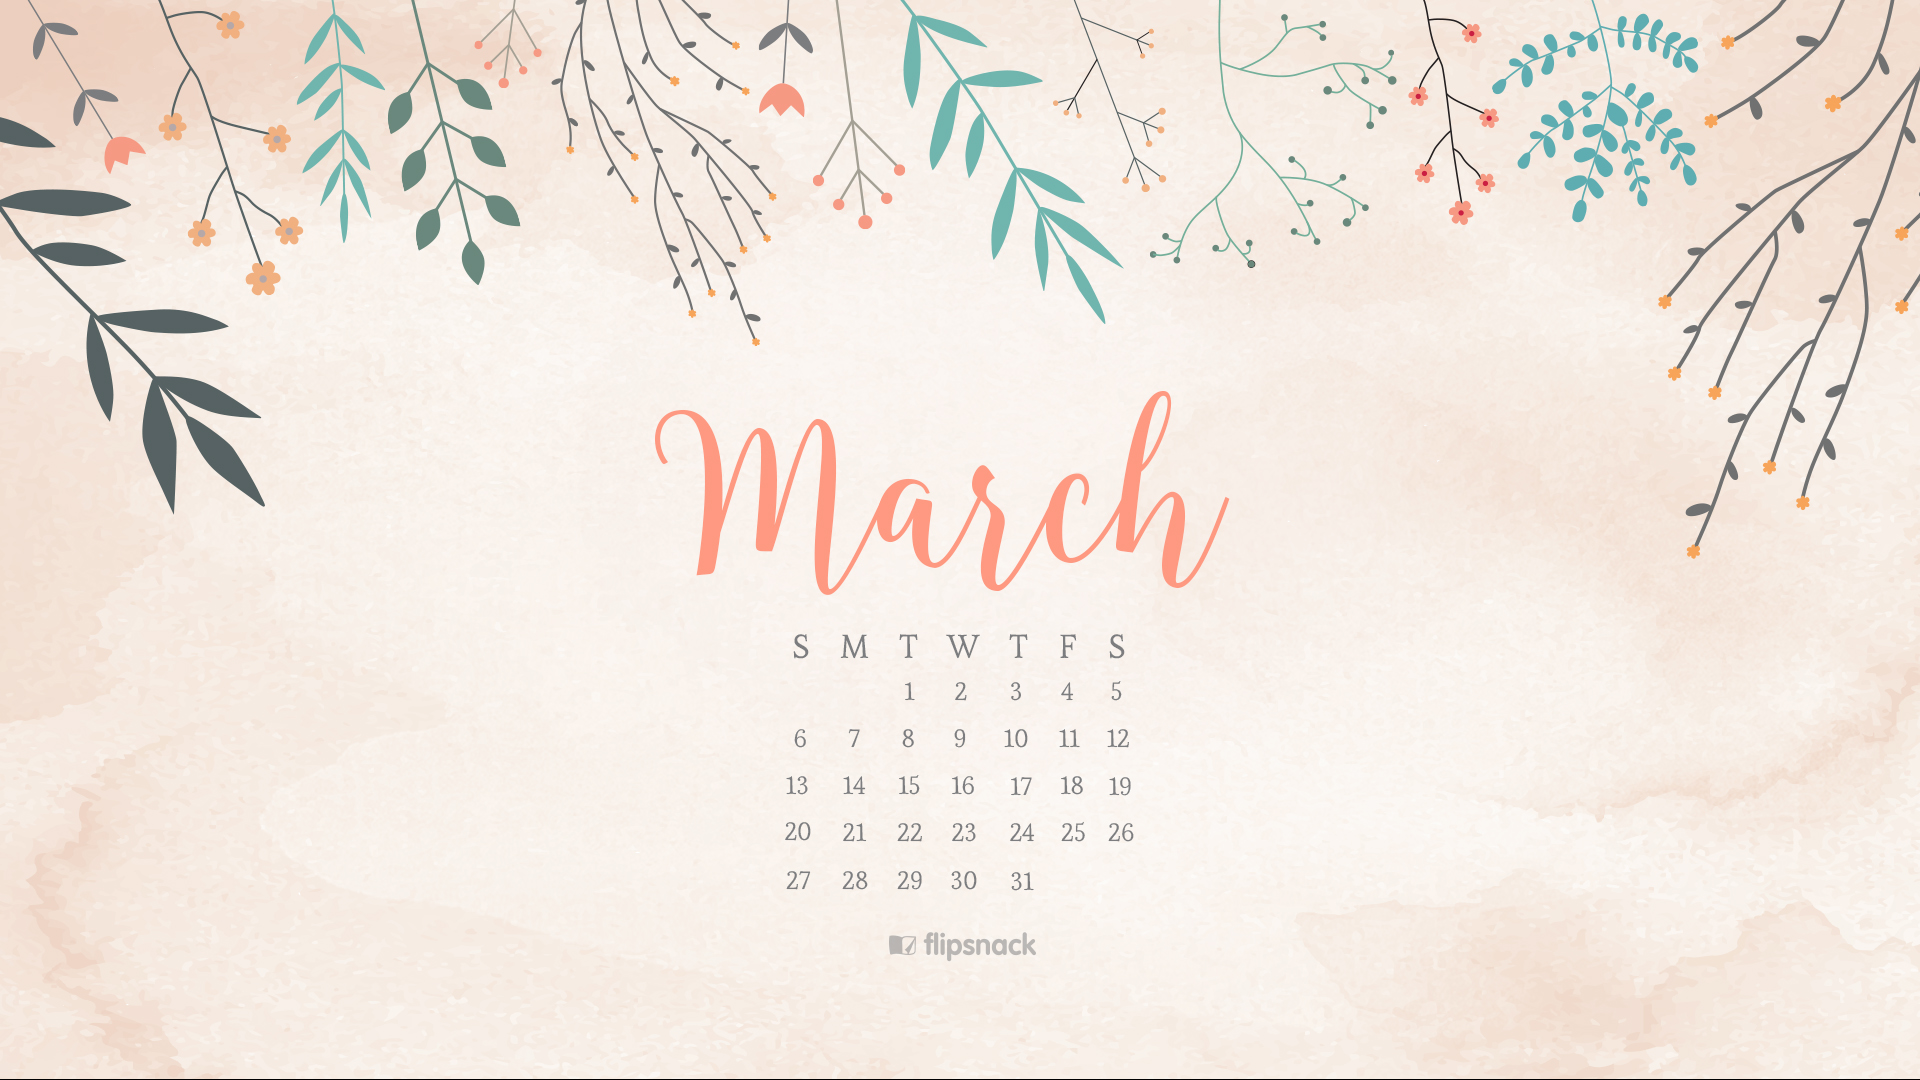 Calendar Background 2016 : March free calendar wallpaper desktop background